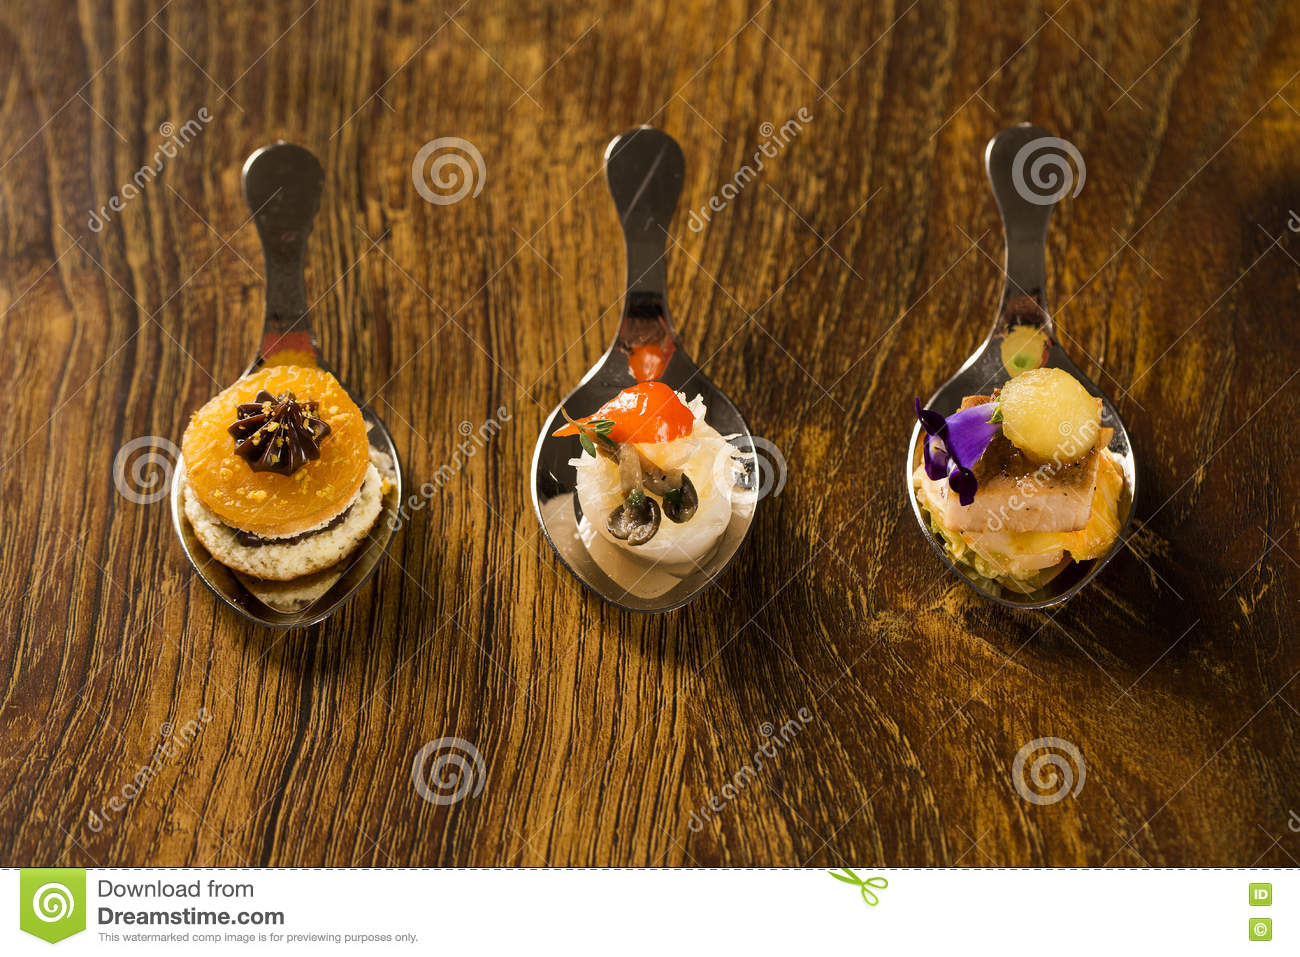 Entry, entree and dessert of finger food in a spoon.